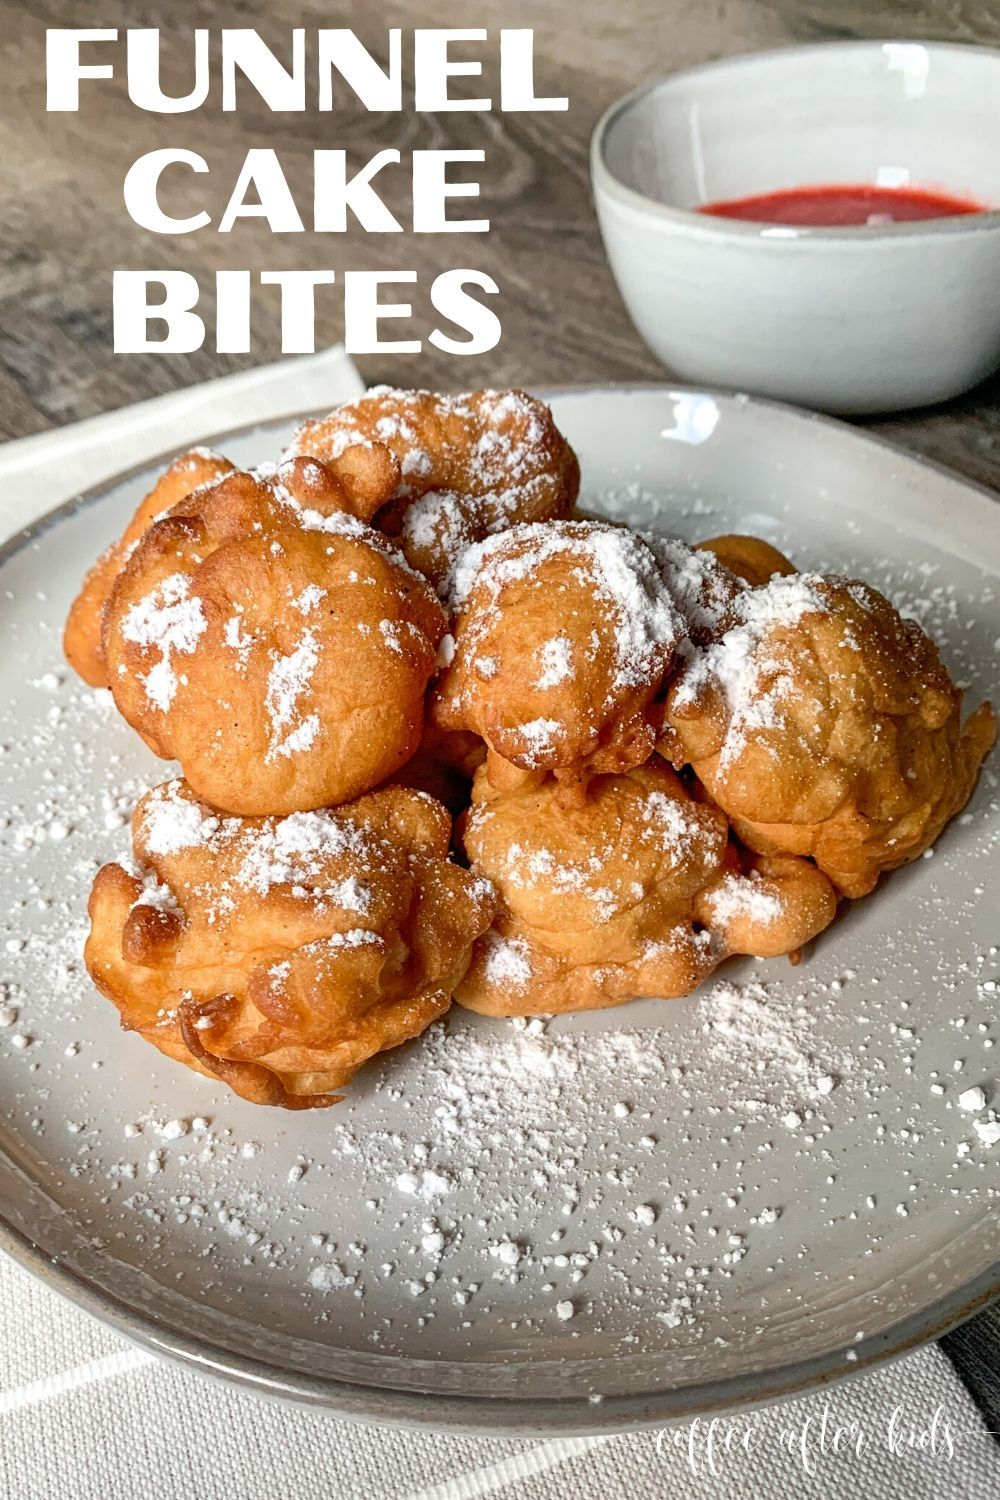 Funnel cake bites coffee after kids recipe in 2020